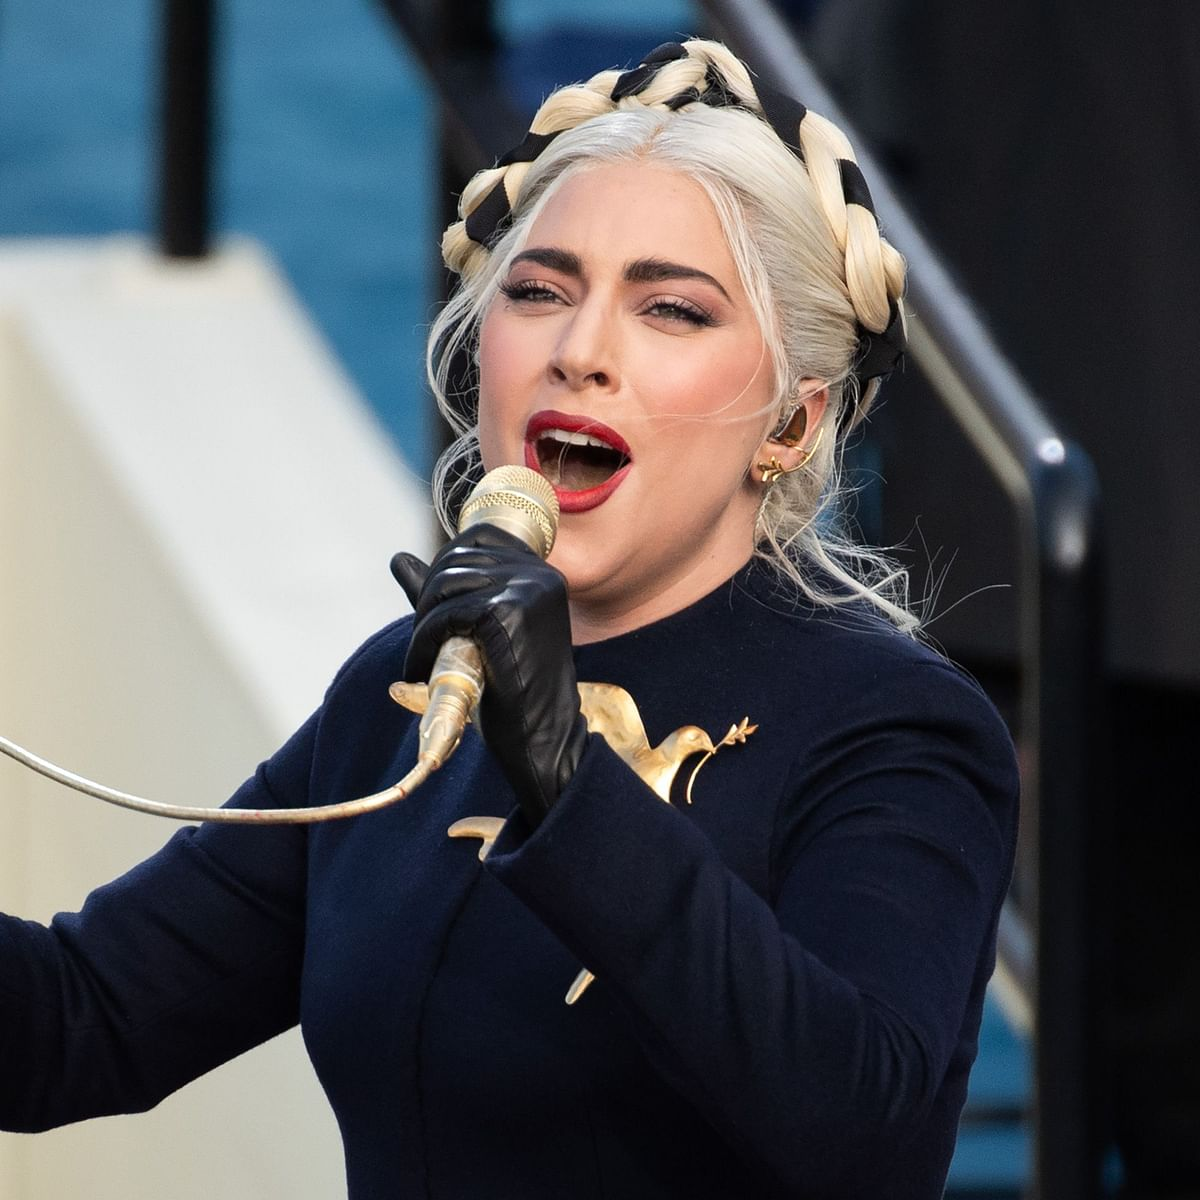 Watch: Lady Gaga delivers a powerful rendition of US national anthem at Joe Biden's inauguration